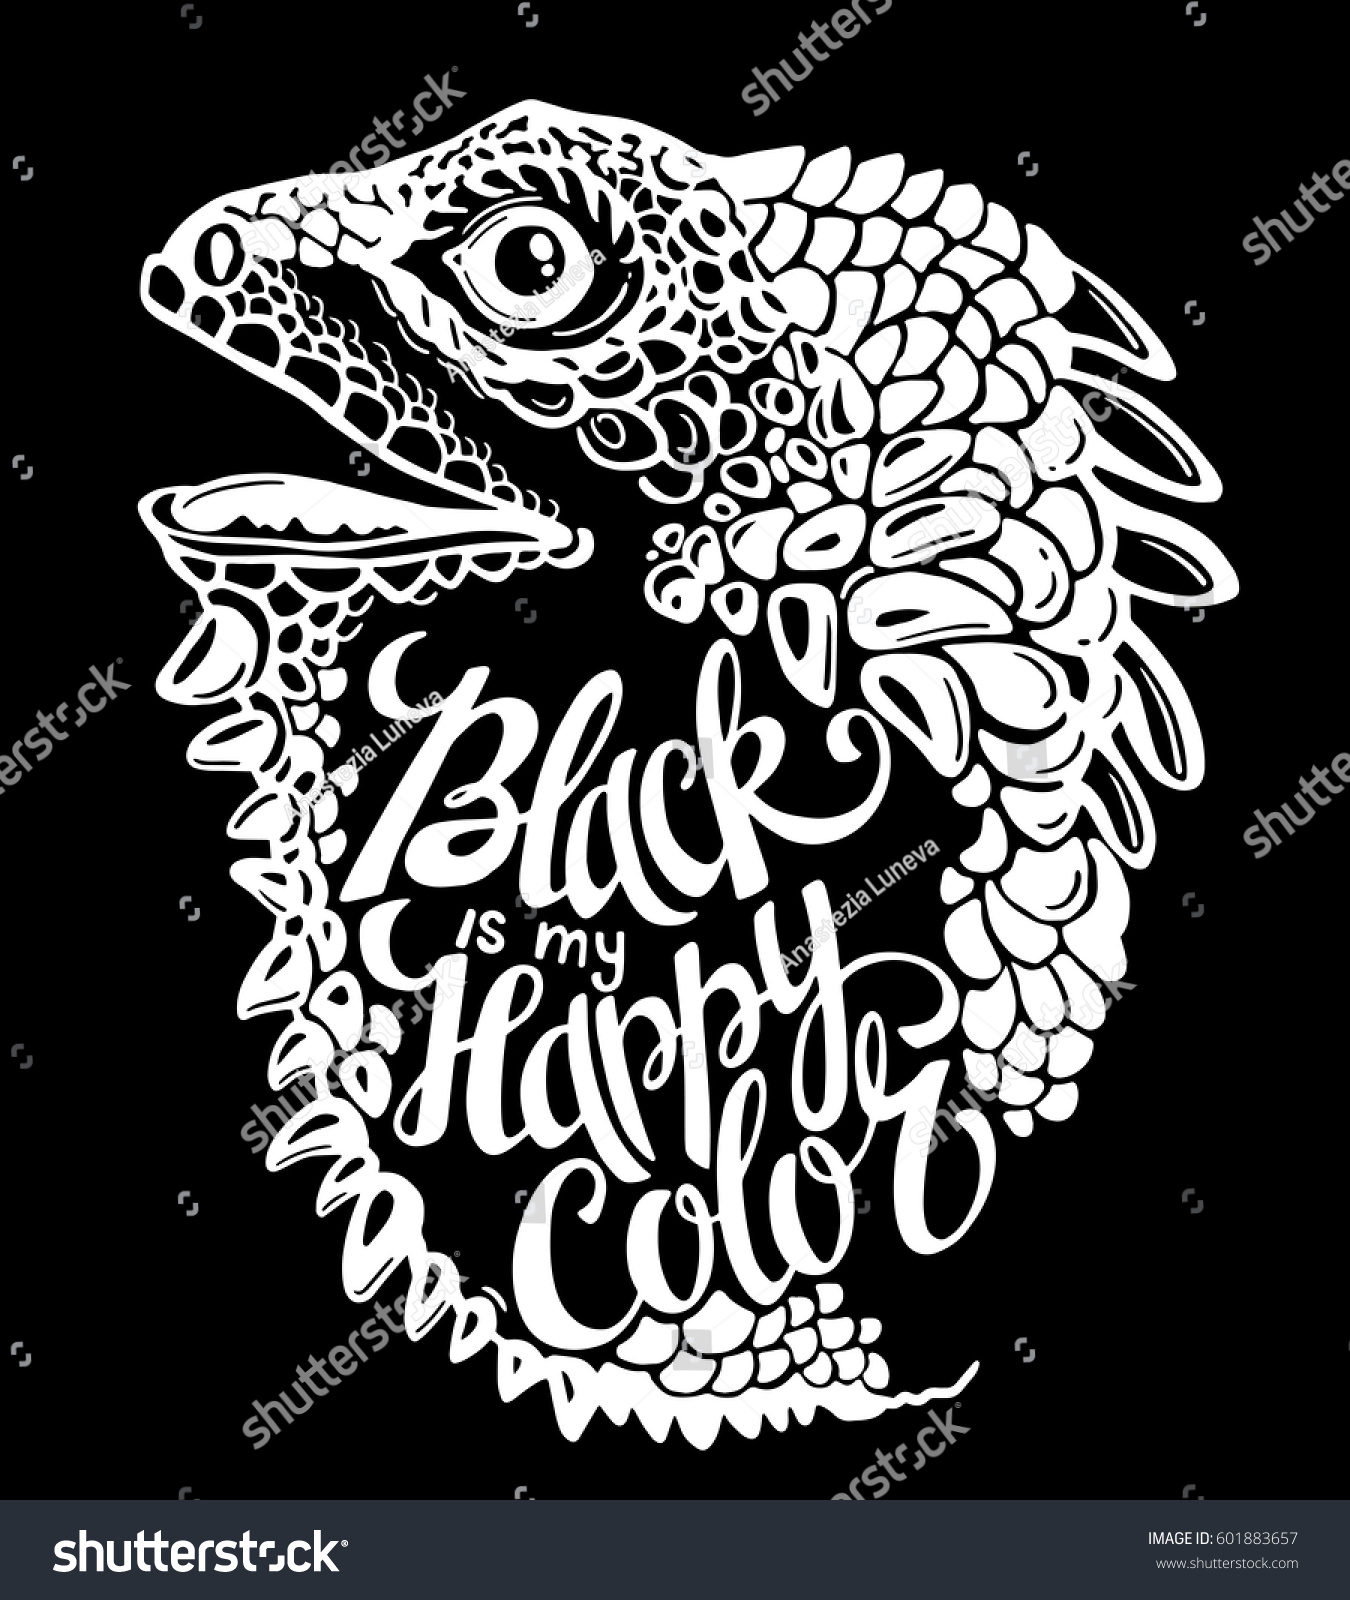 T shirt black is my happy color - Vector Iguana With Words Black Is My Happy Color Inspiration Phrase Dragon Animal